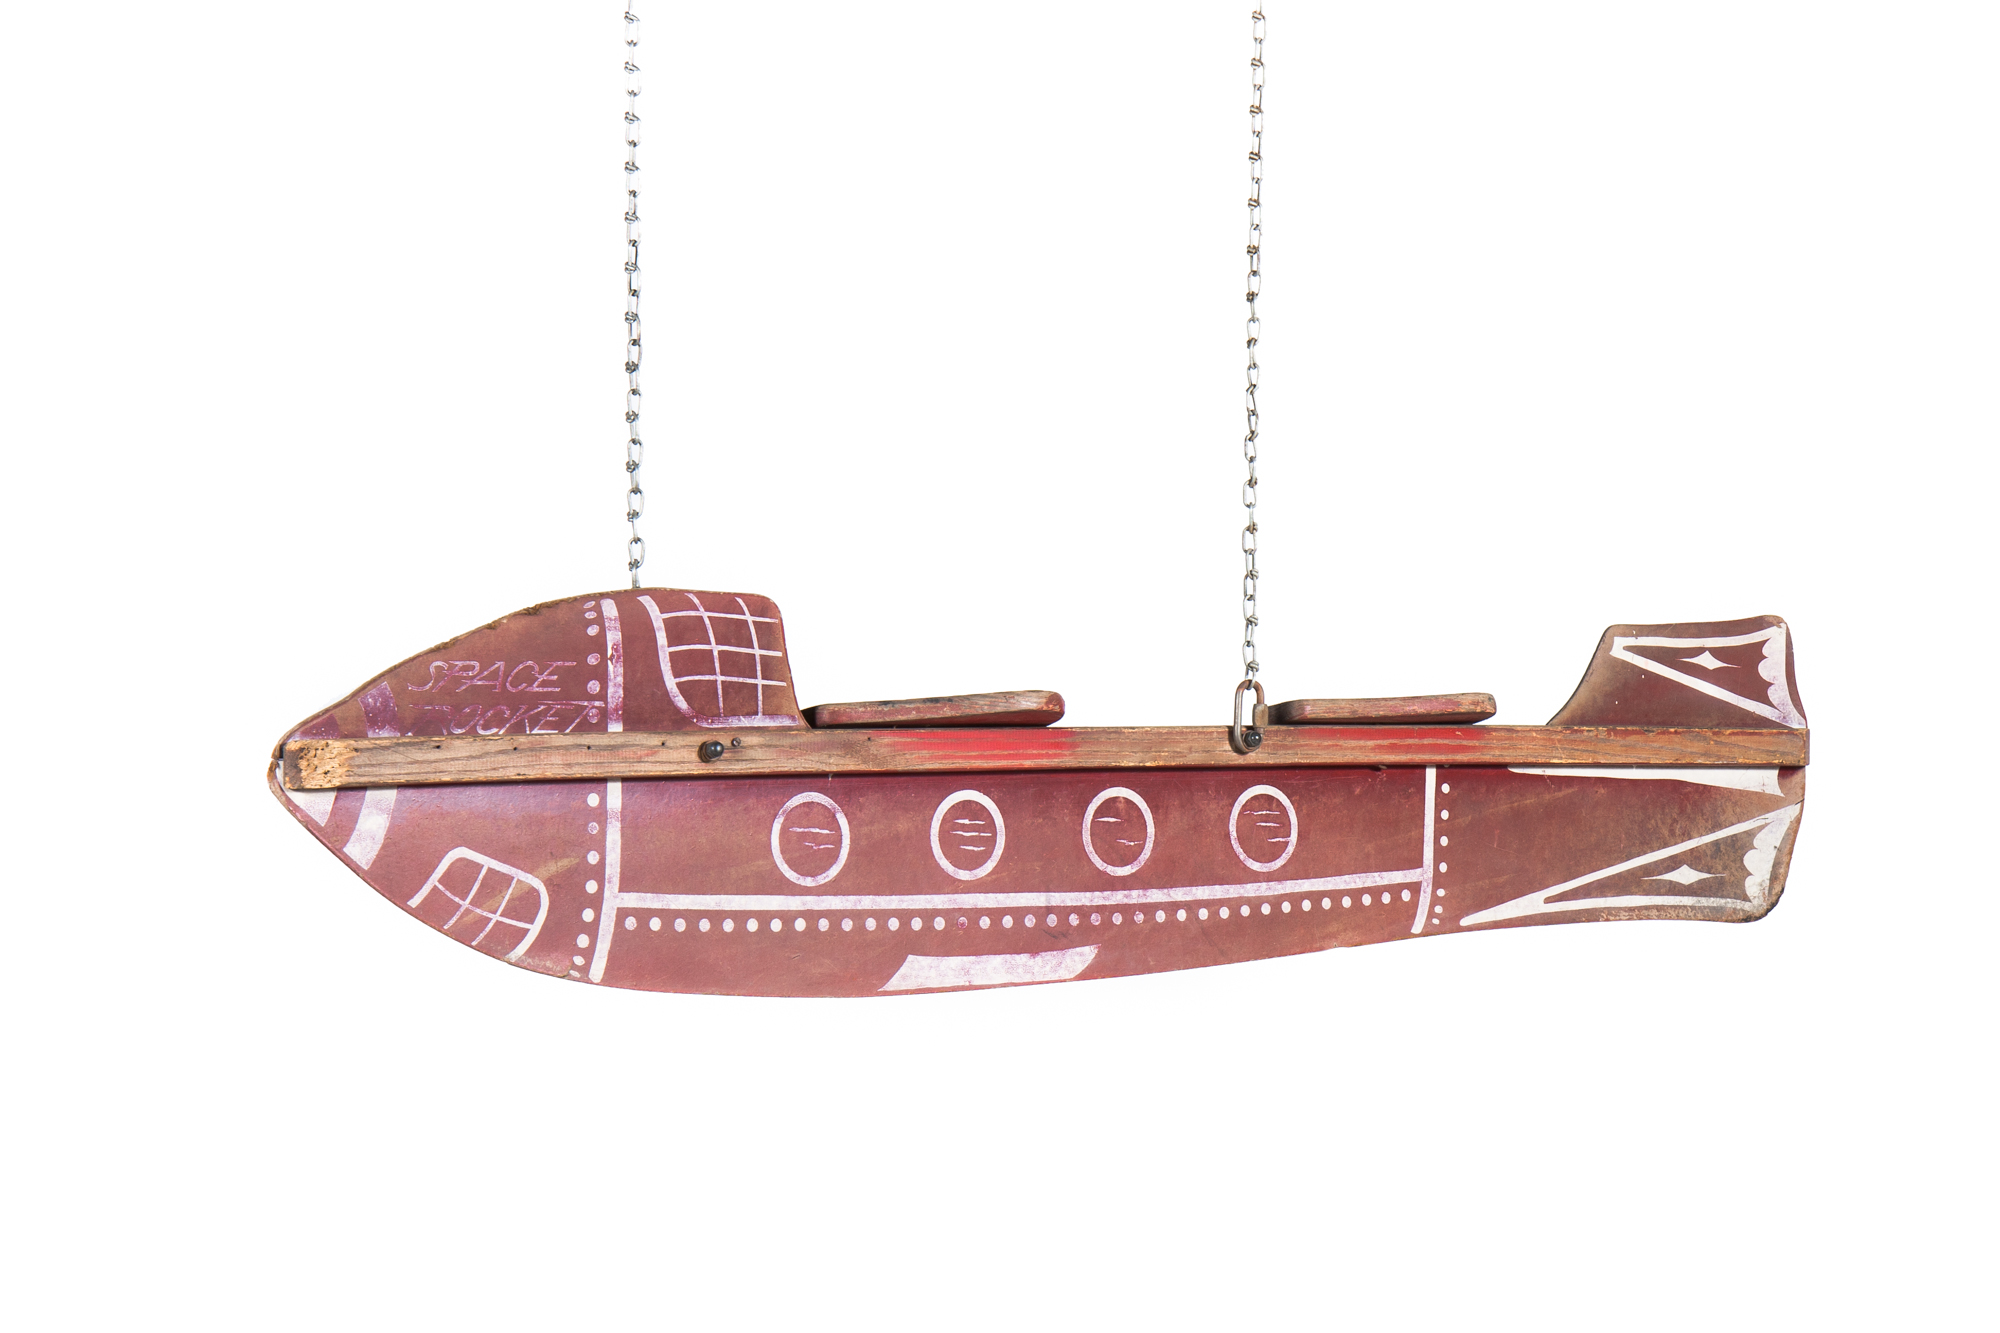 """Space Rocket"" Swing – Beaverboard (from Virginia circa 1950) - Length 6'0"""